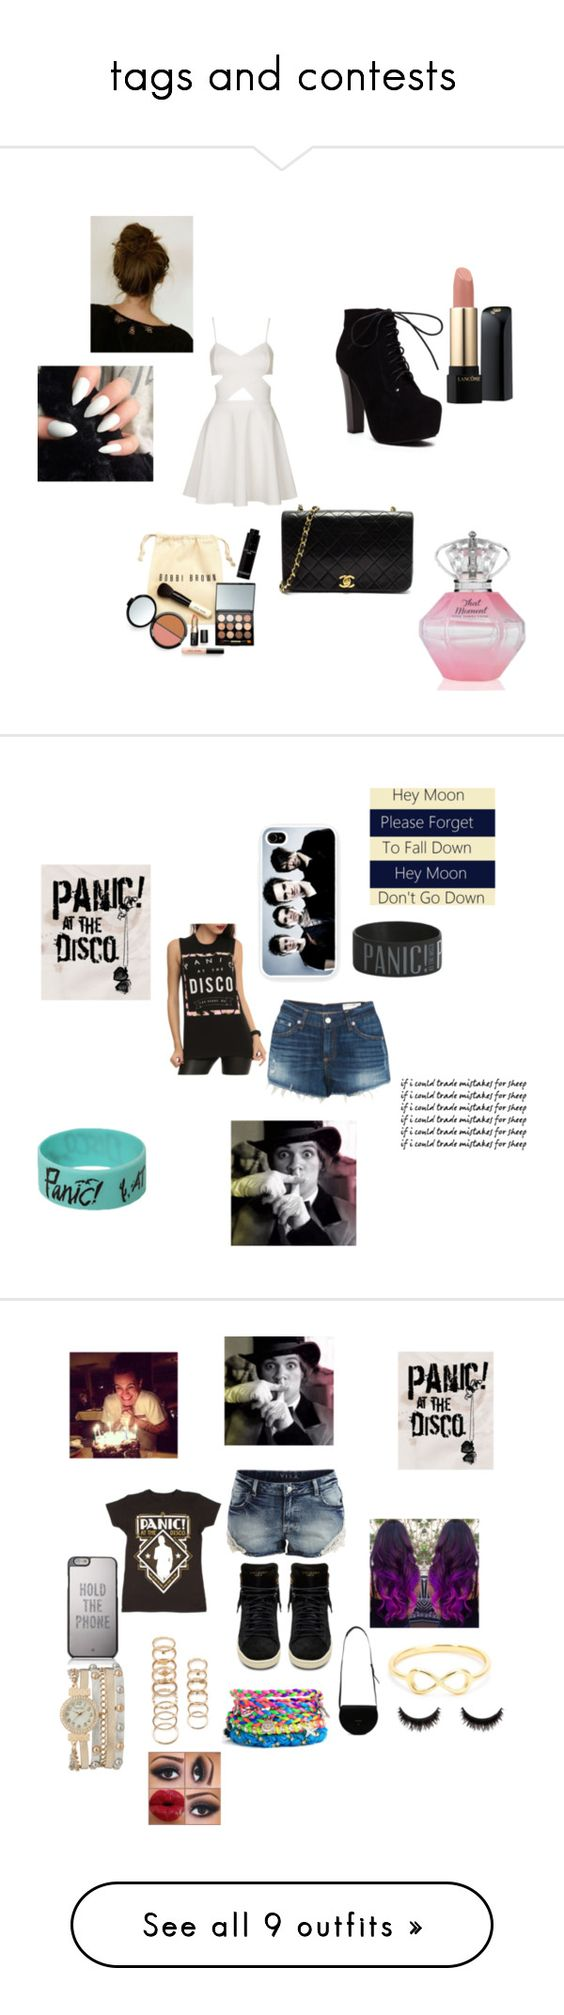 """tags and contests"" by arianagrande1230 ❤ liked on Polyvore featuring Topshop, Chanel, Lancôme, Bobbi Brown Cosmetics, rag & bone, VILA, Yves Saint Laurent, Kate Spade, PB 0110 and Forever 21"